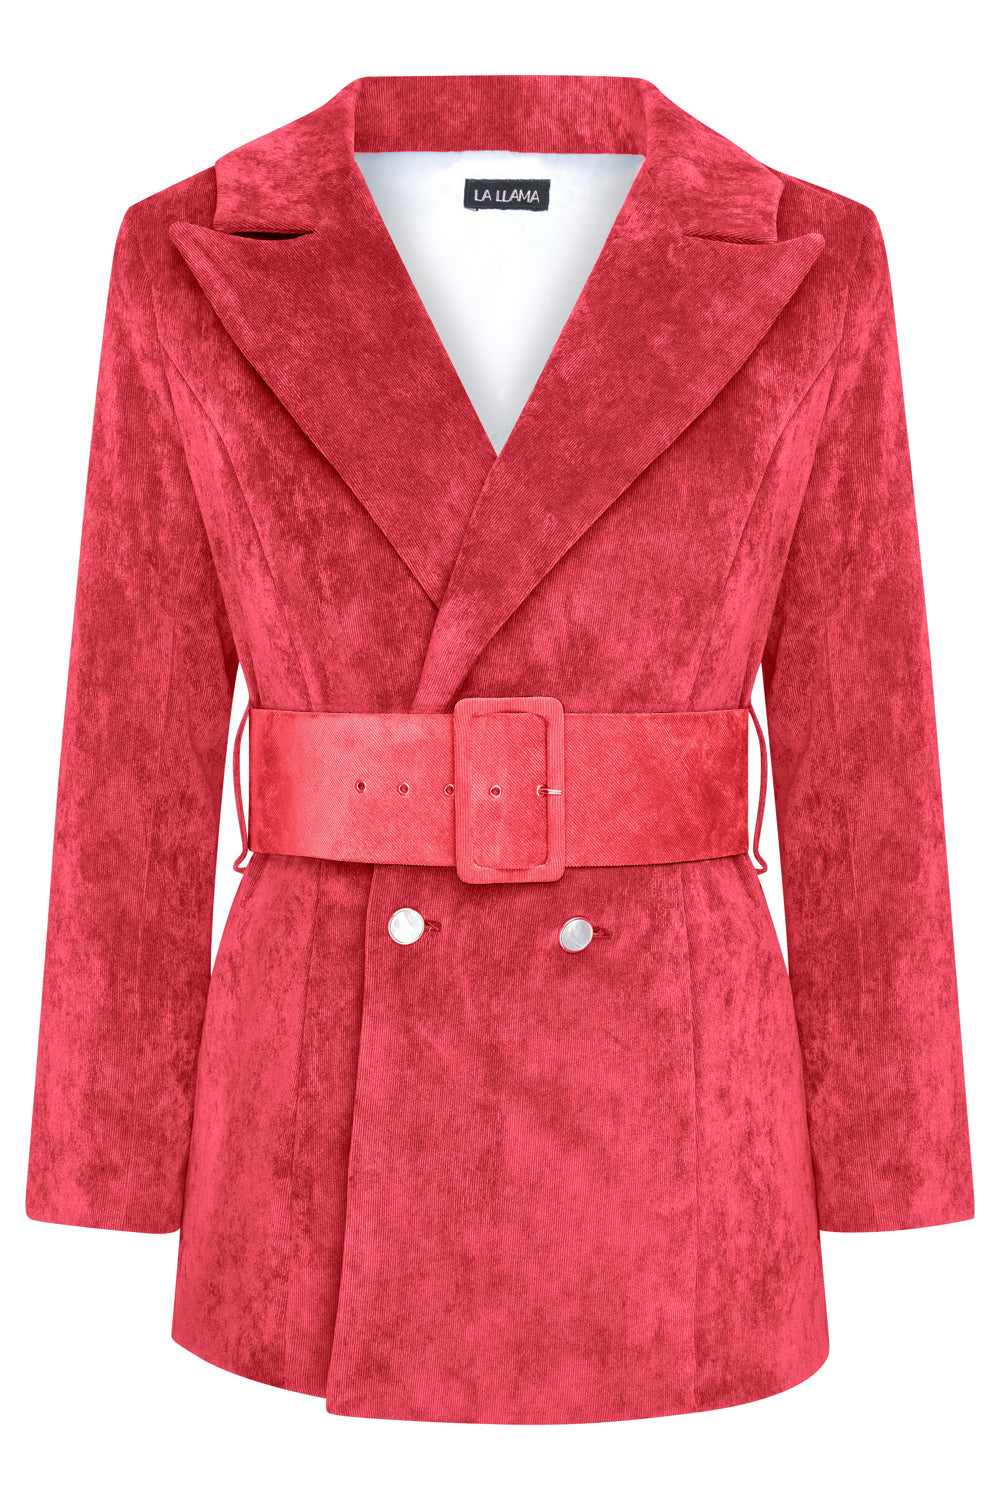 LUNA BLAZER -  BERRY RED